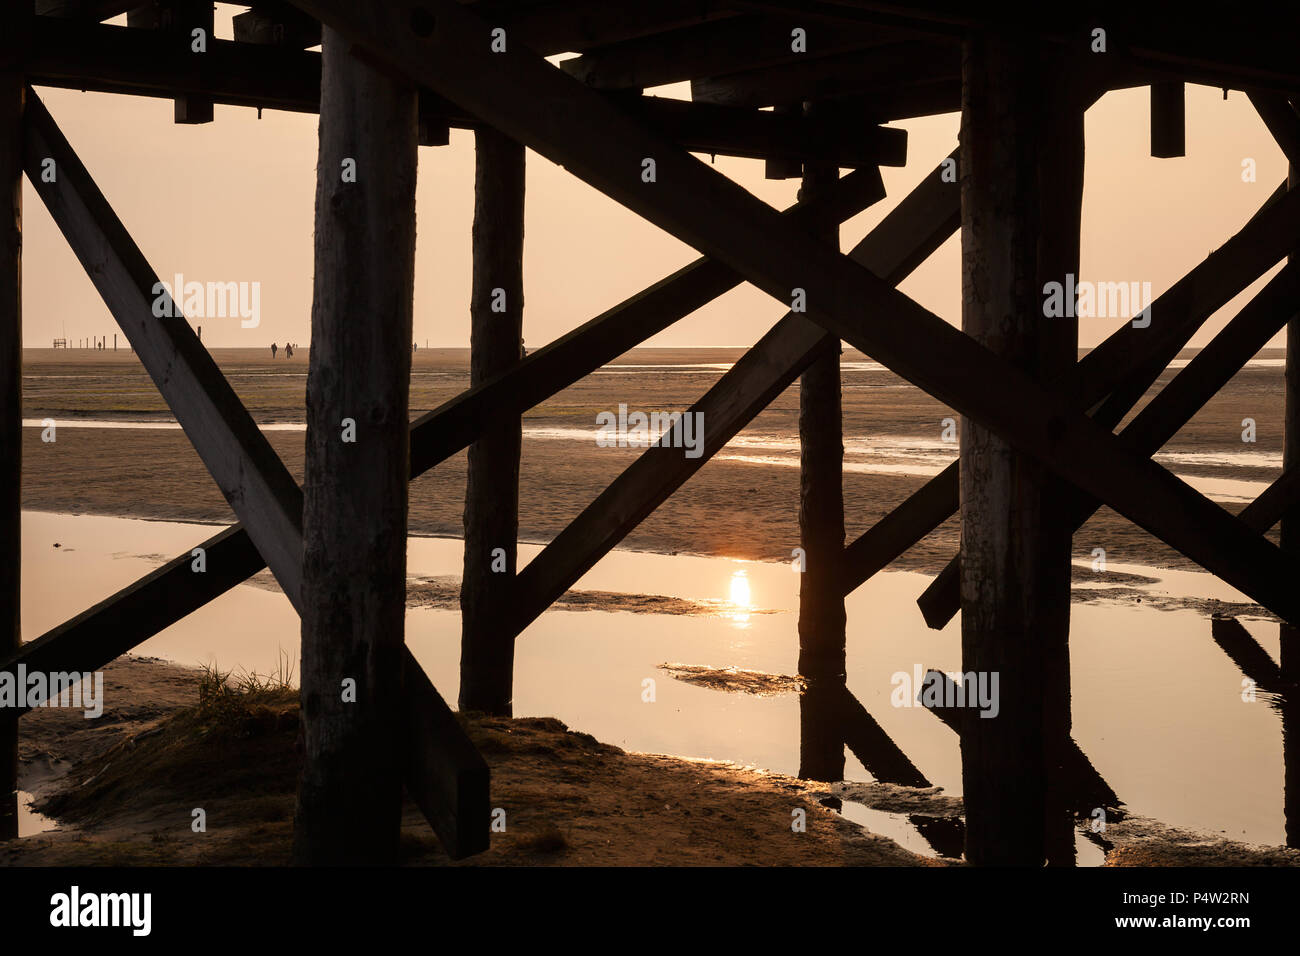 St. Peter Ording, Germany, substructure of a pile dwelling at low tide on the beach of St. Peter Ording - Stock Image